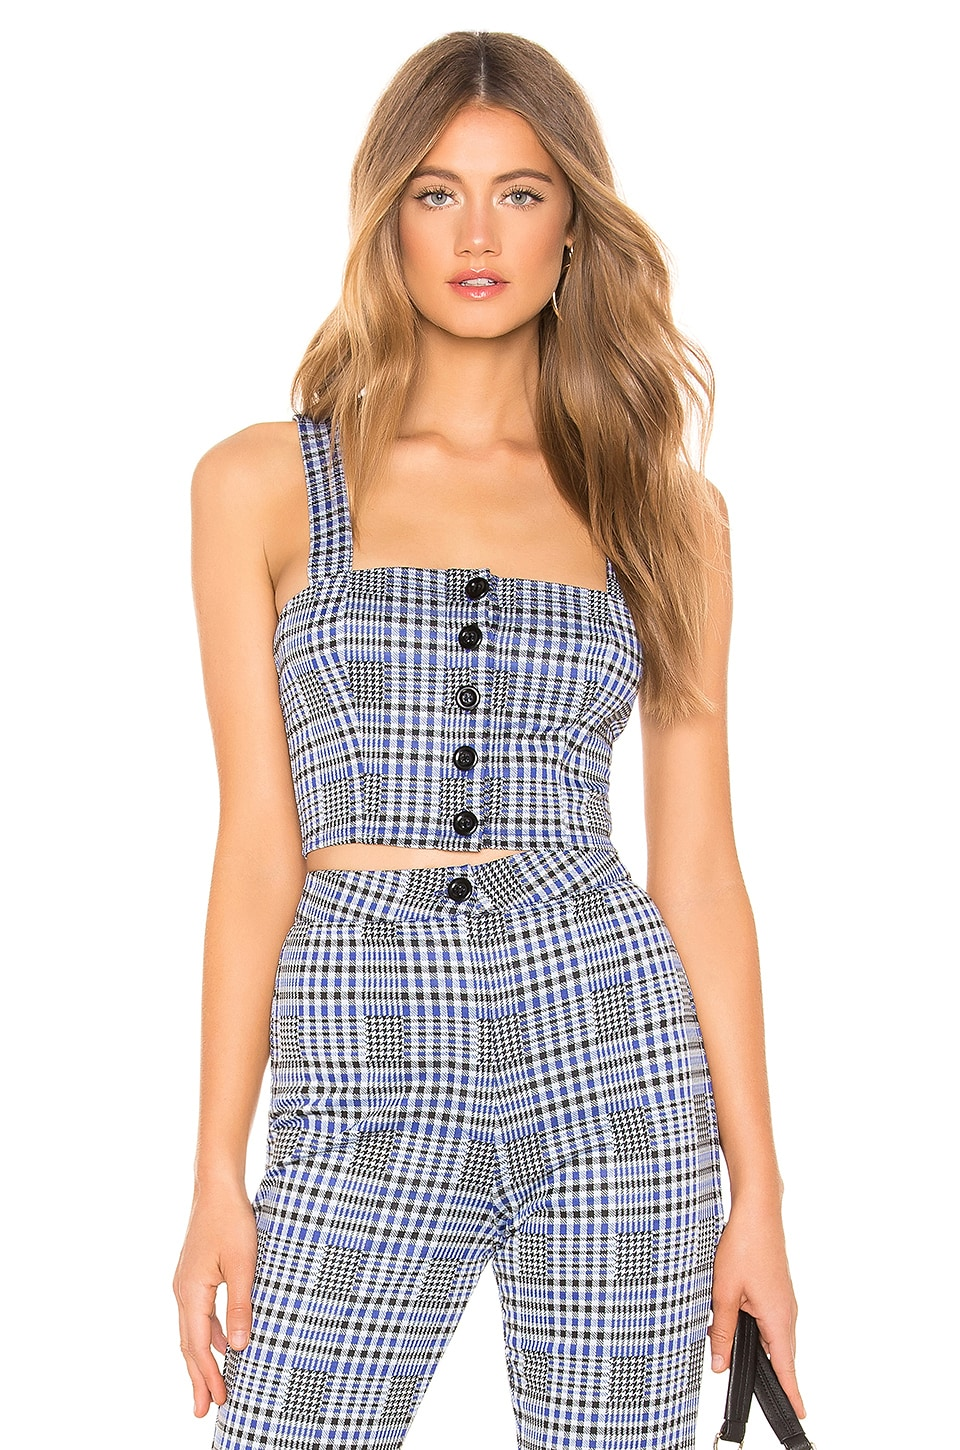 Privacy Please Avalon Top in Blue & Black Plaid